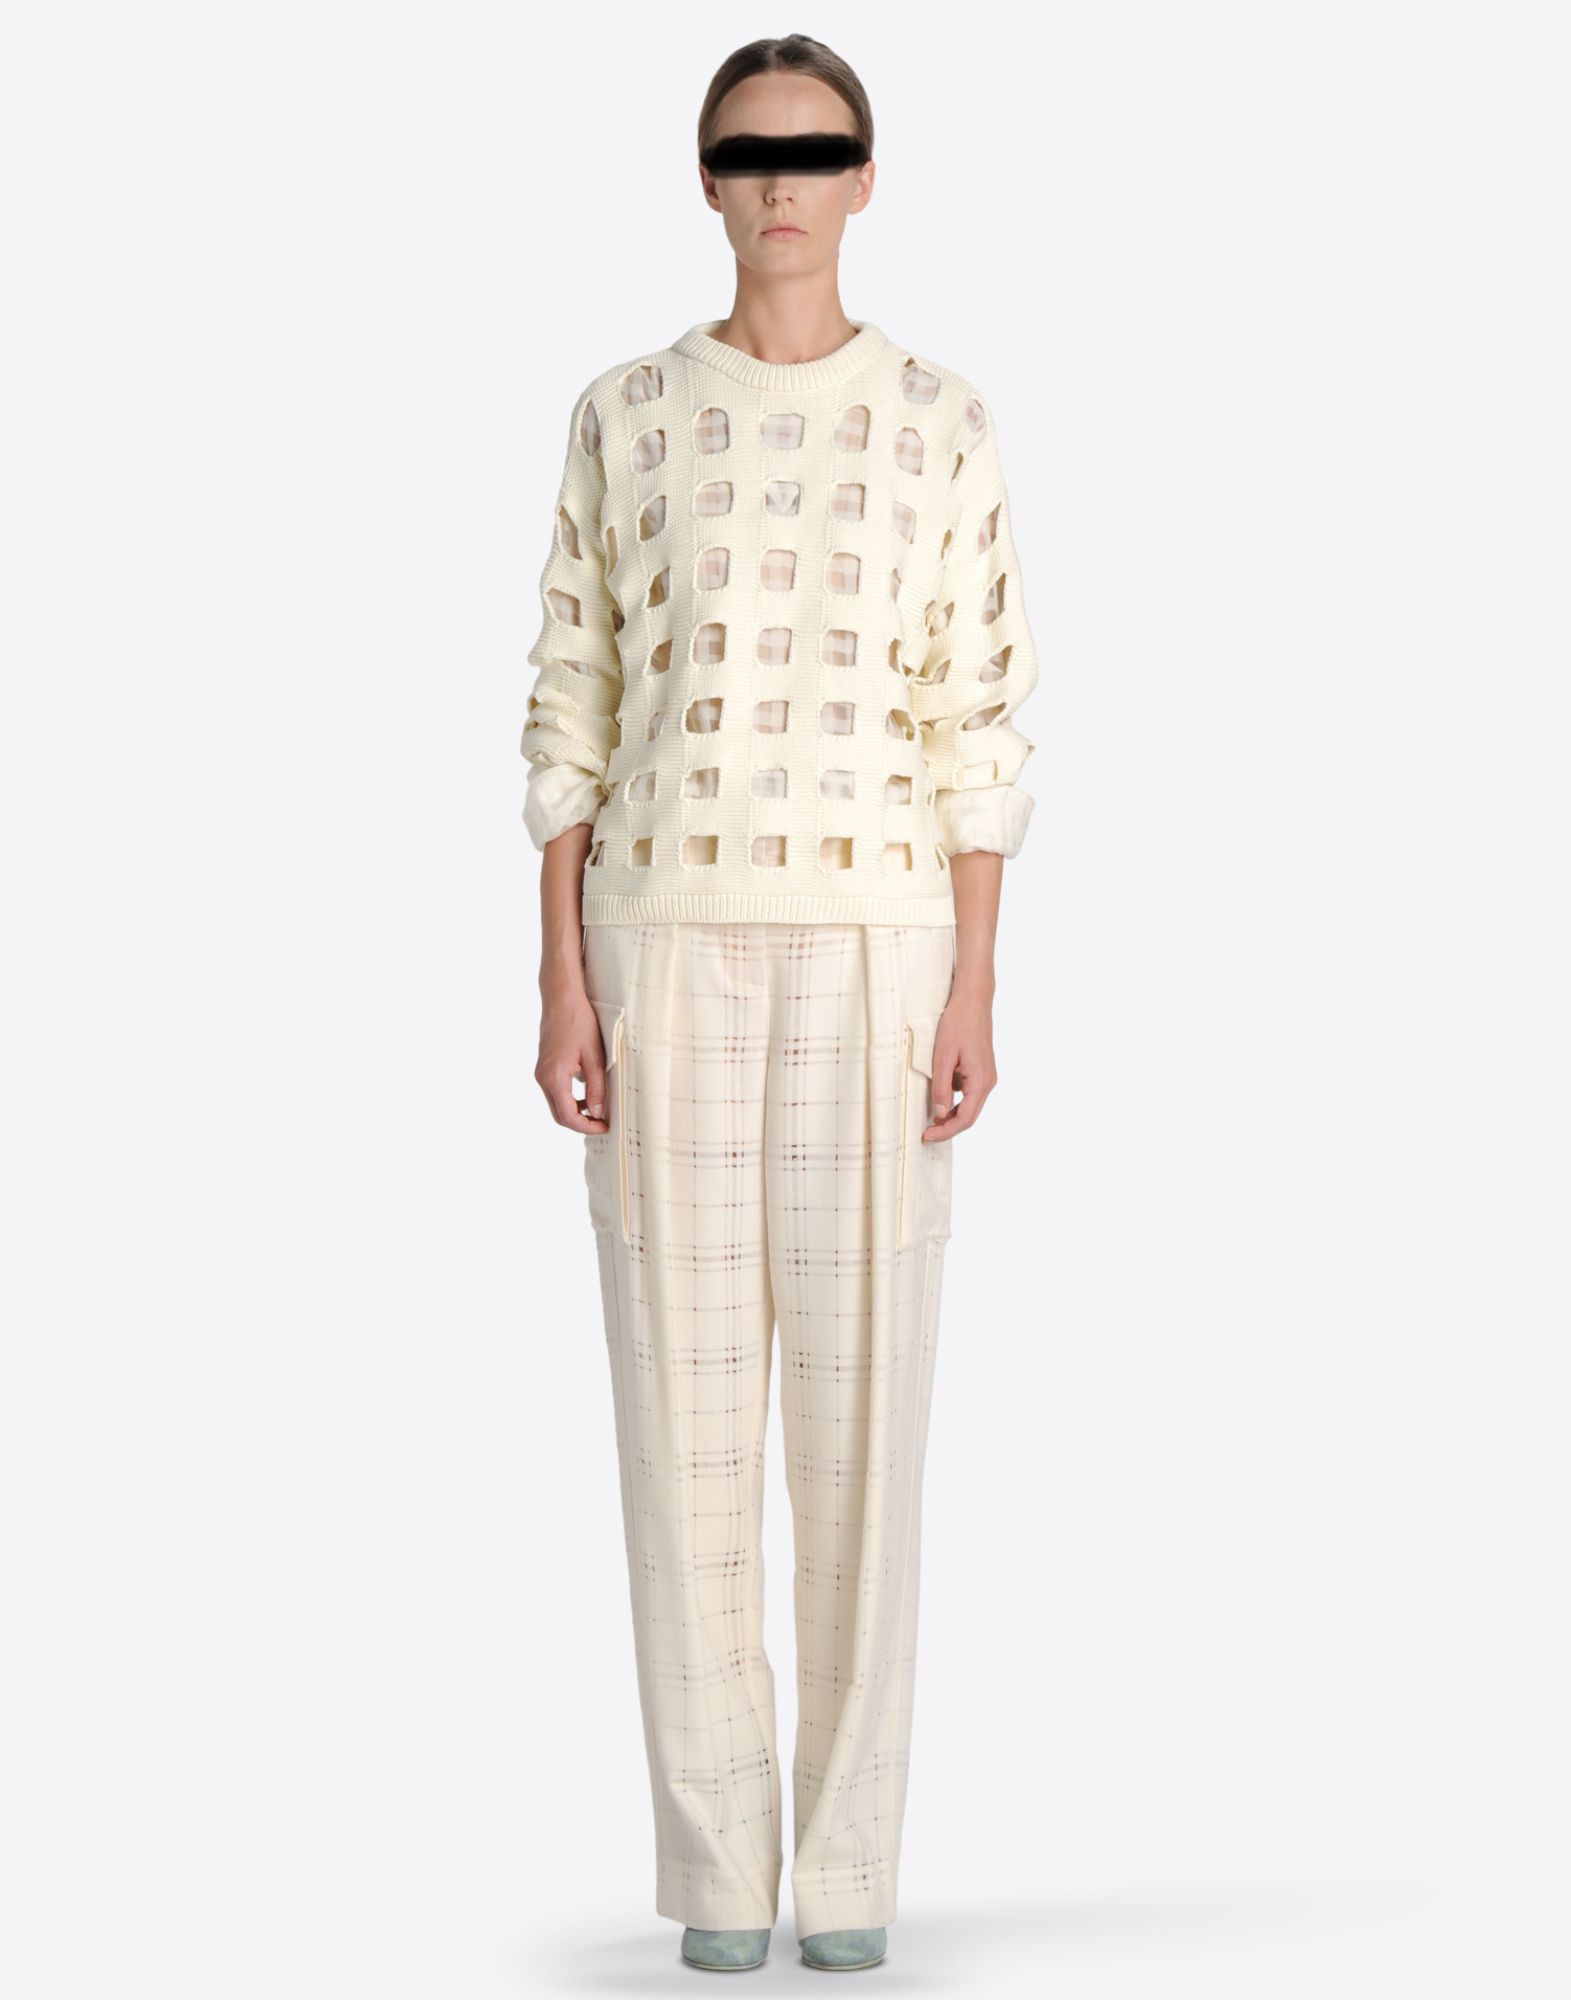 MAISON MARGIELA 1 Knit sweater with cut-out checks Long sleeve sweater Woman r